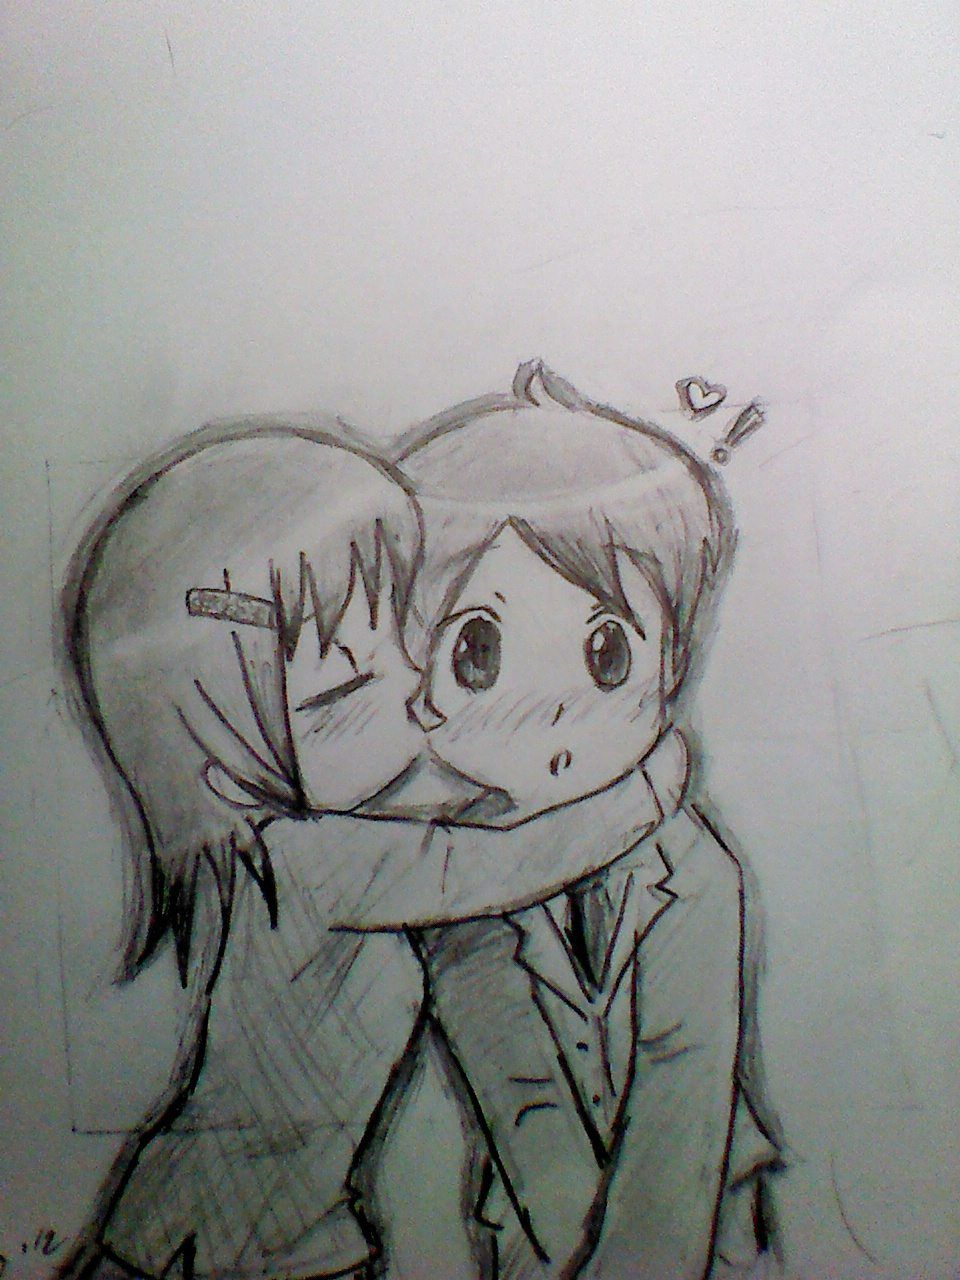 Cute Love Drawings View Cute Anime Love Sketch Drawing On Tumblr Image In Full Size Pencil Drawing Images Cute Drawings Of Love Pencil Drawings